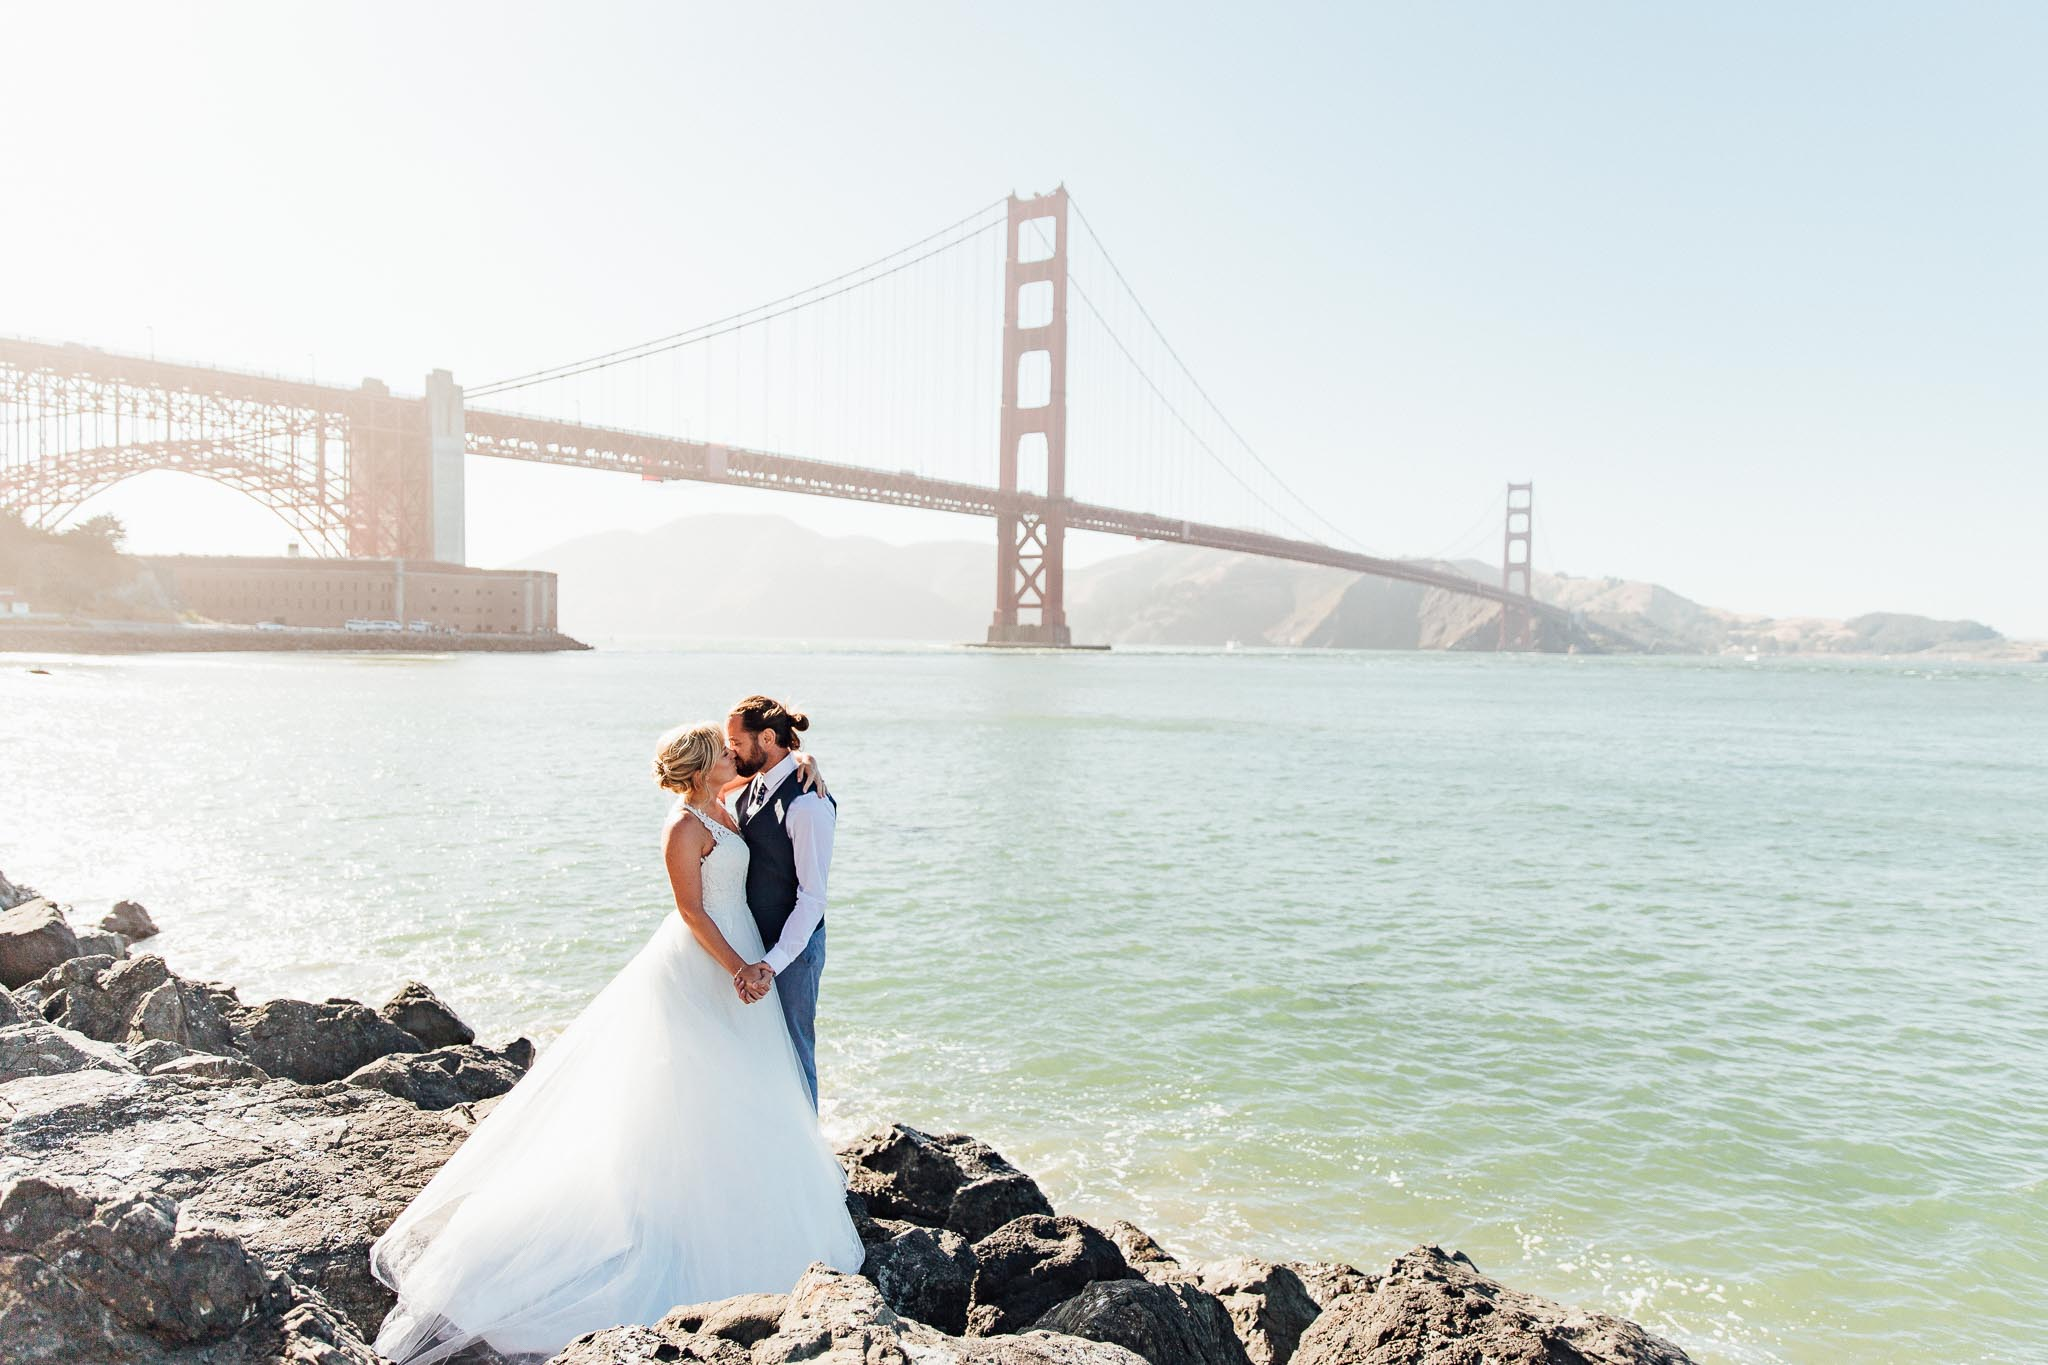 Couple kiss in front of Golden Gate bridge during their San Francisco Adventure Elopement